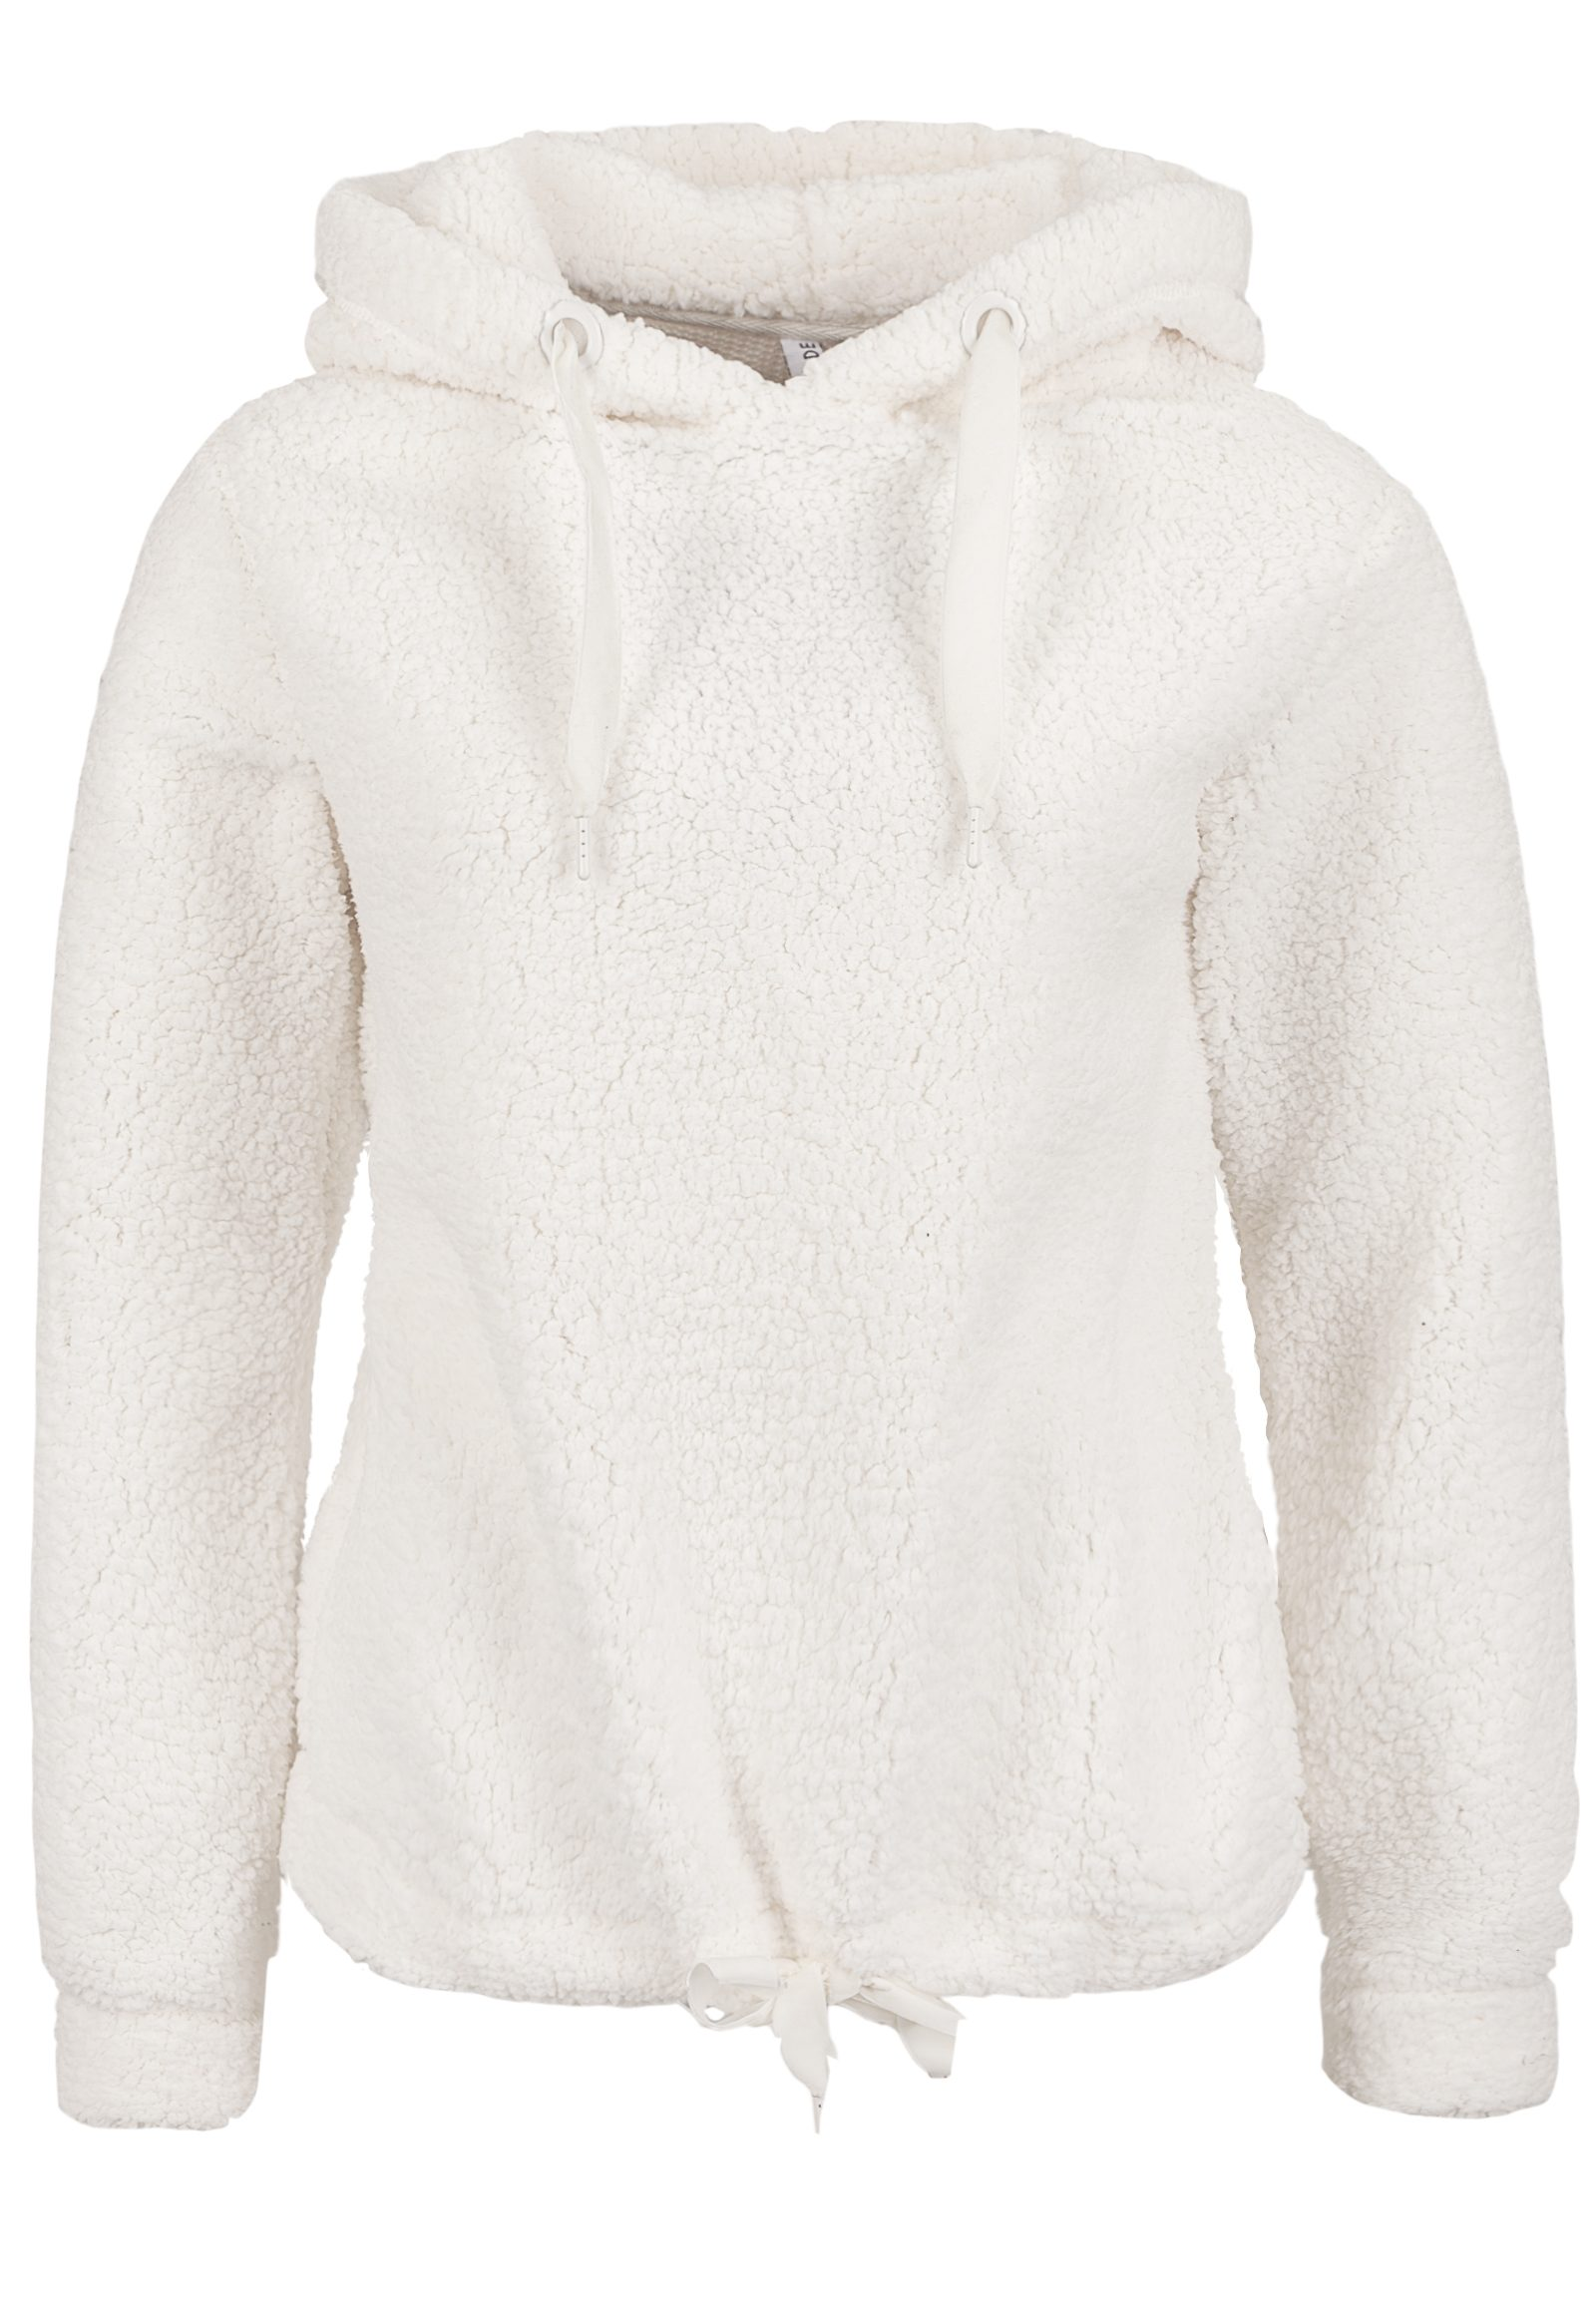 Damen Fresh Made Fleece Pulli mit Samt-Kordeln weiß | 04058427547369